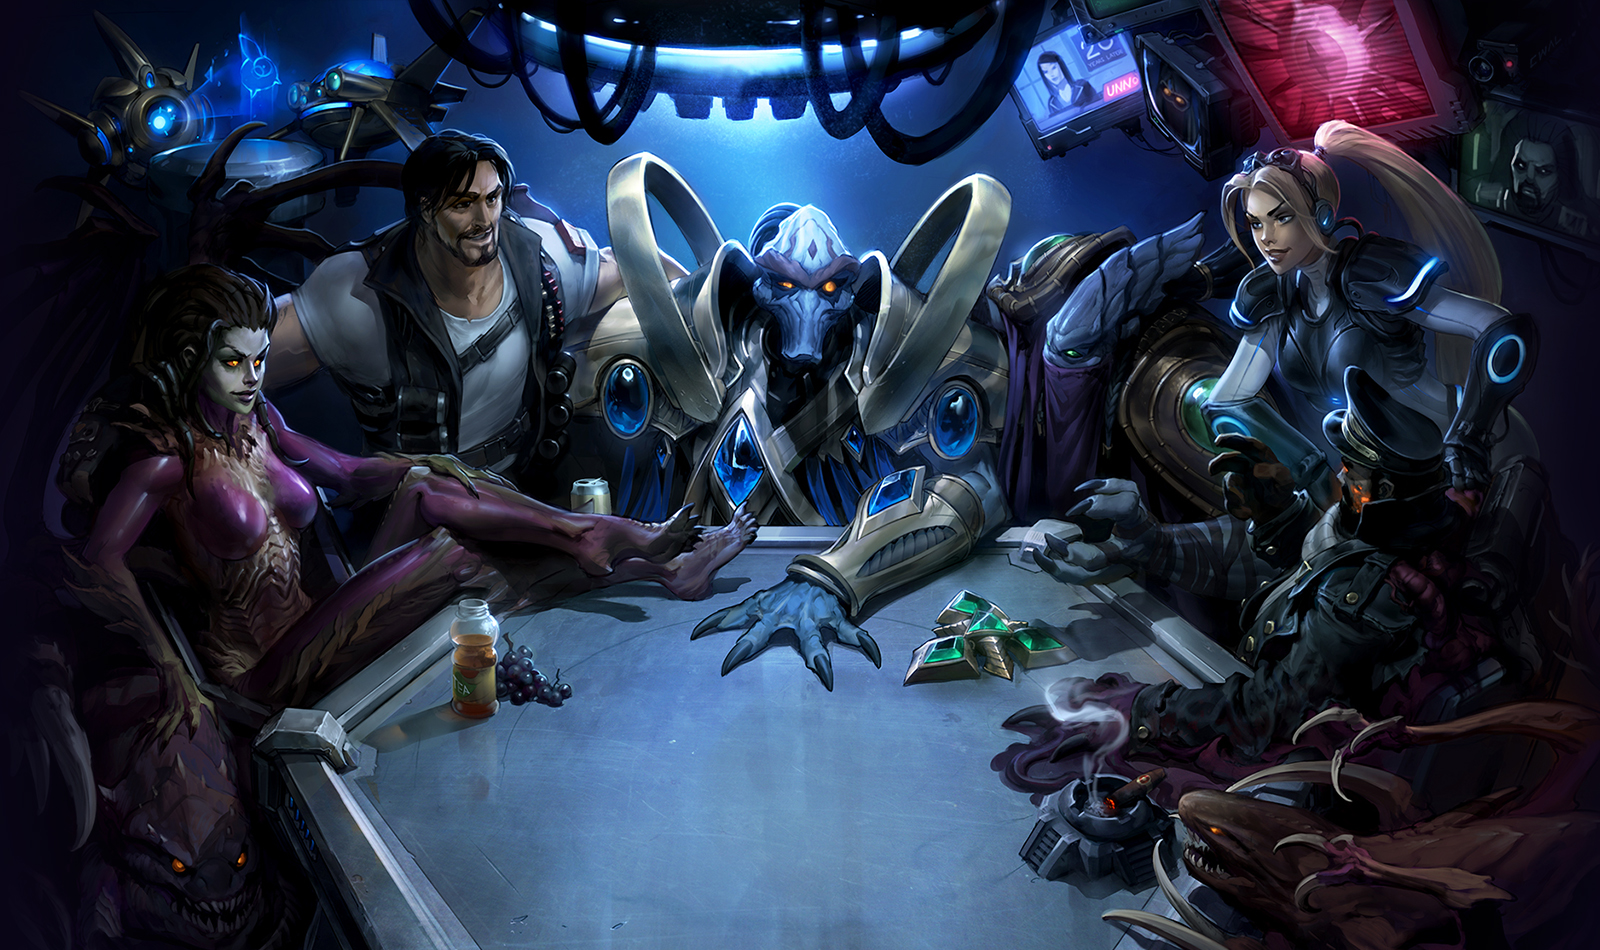 Blizzard celebrates StarCraft's 20th anniversary with in-game giveaways